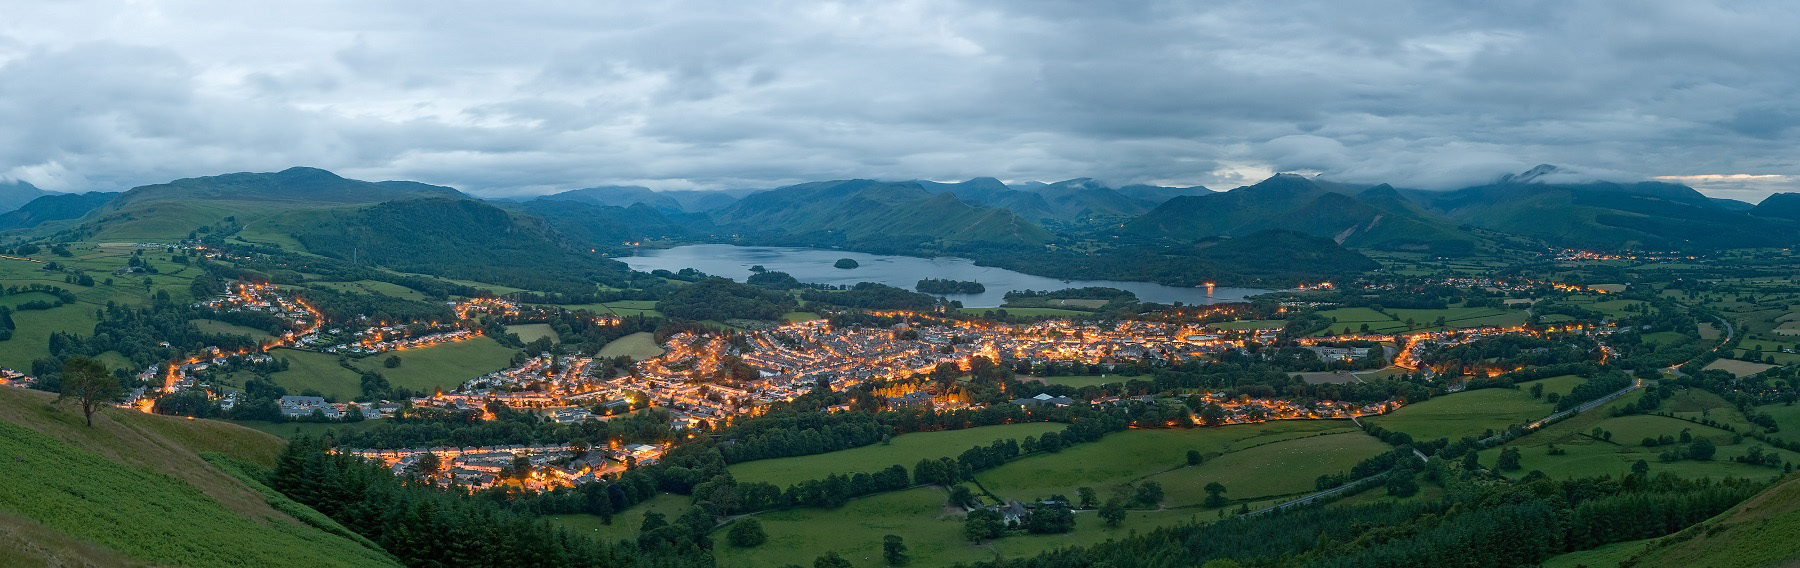 things to do Cumbria